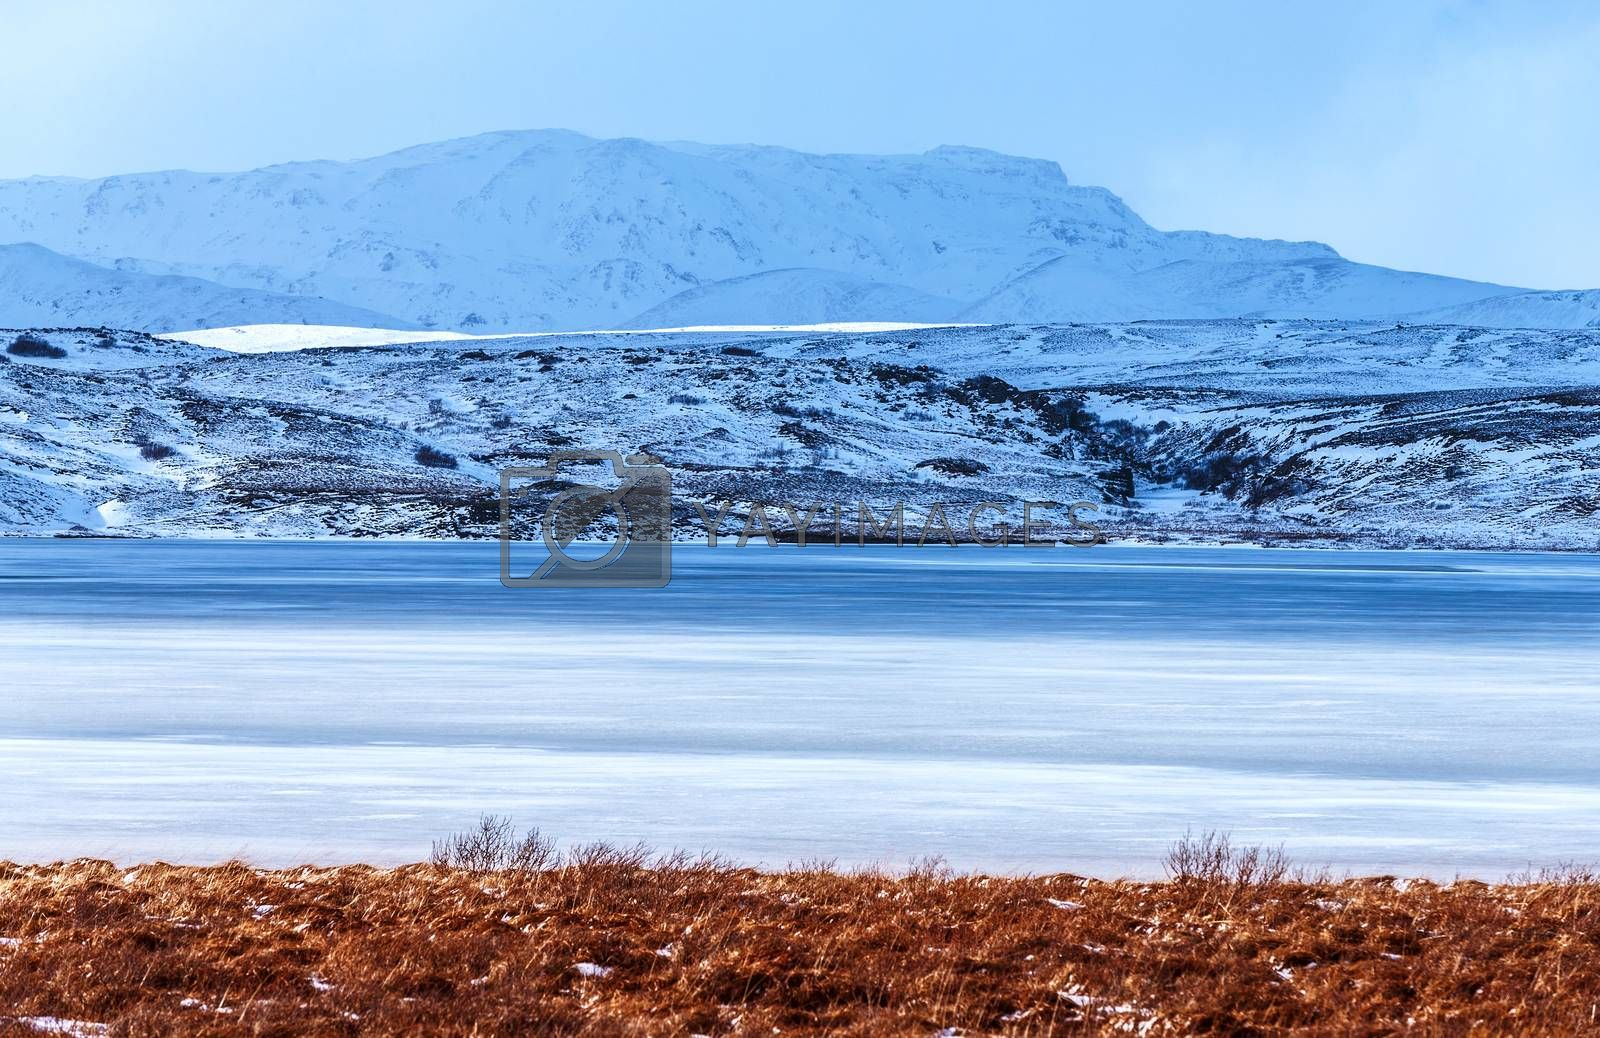 Beautiful winter landscape, big frozen lake near high mountains covered with snow, amazing nature of Iceland